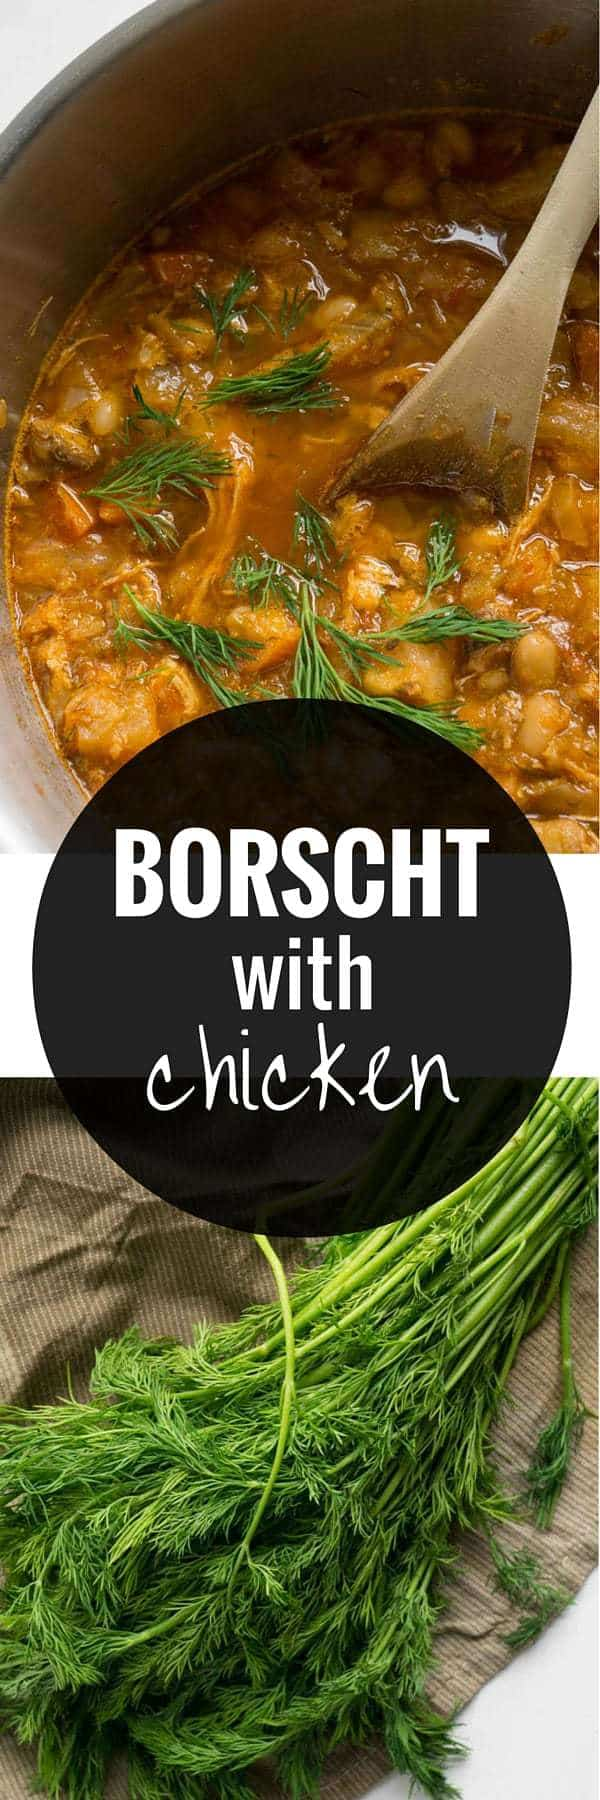 Borscht with Chicken